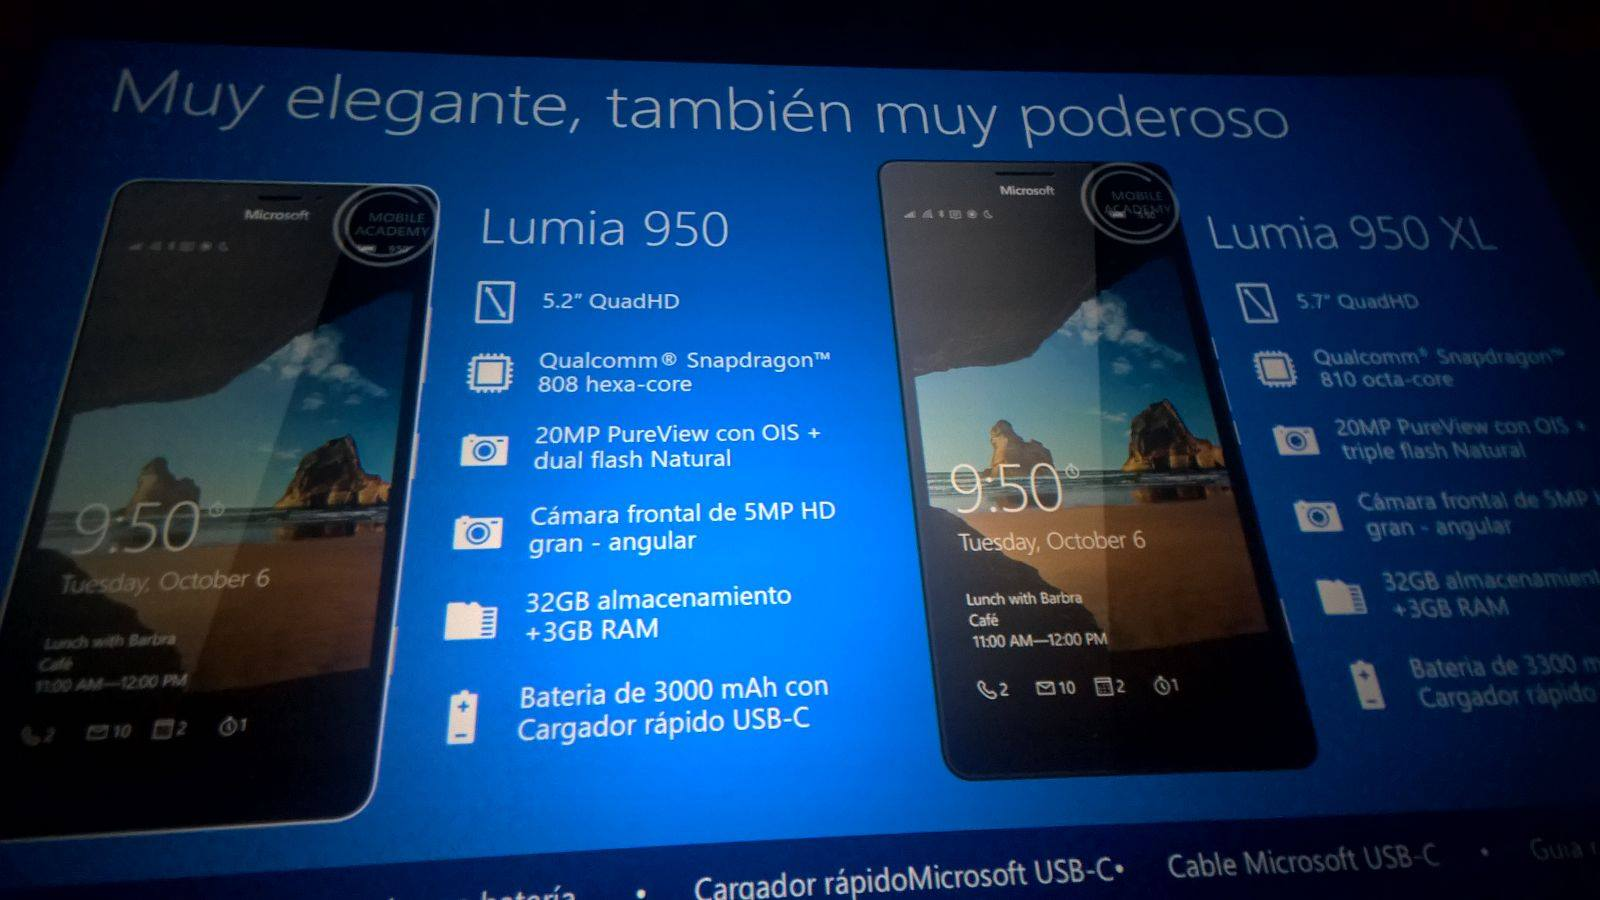 New pictures of the Lumia 950 XL and Lumia 950 leaked, confirms rumored specs 3